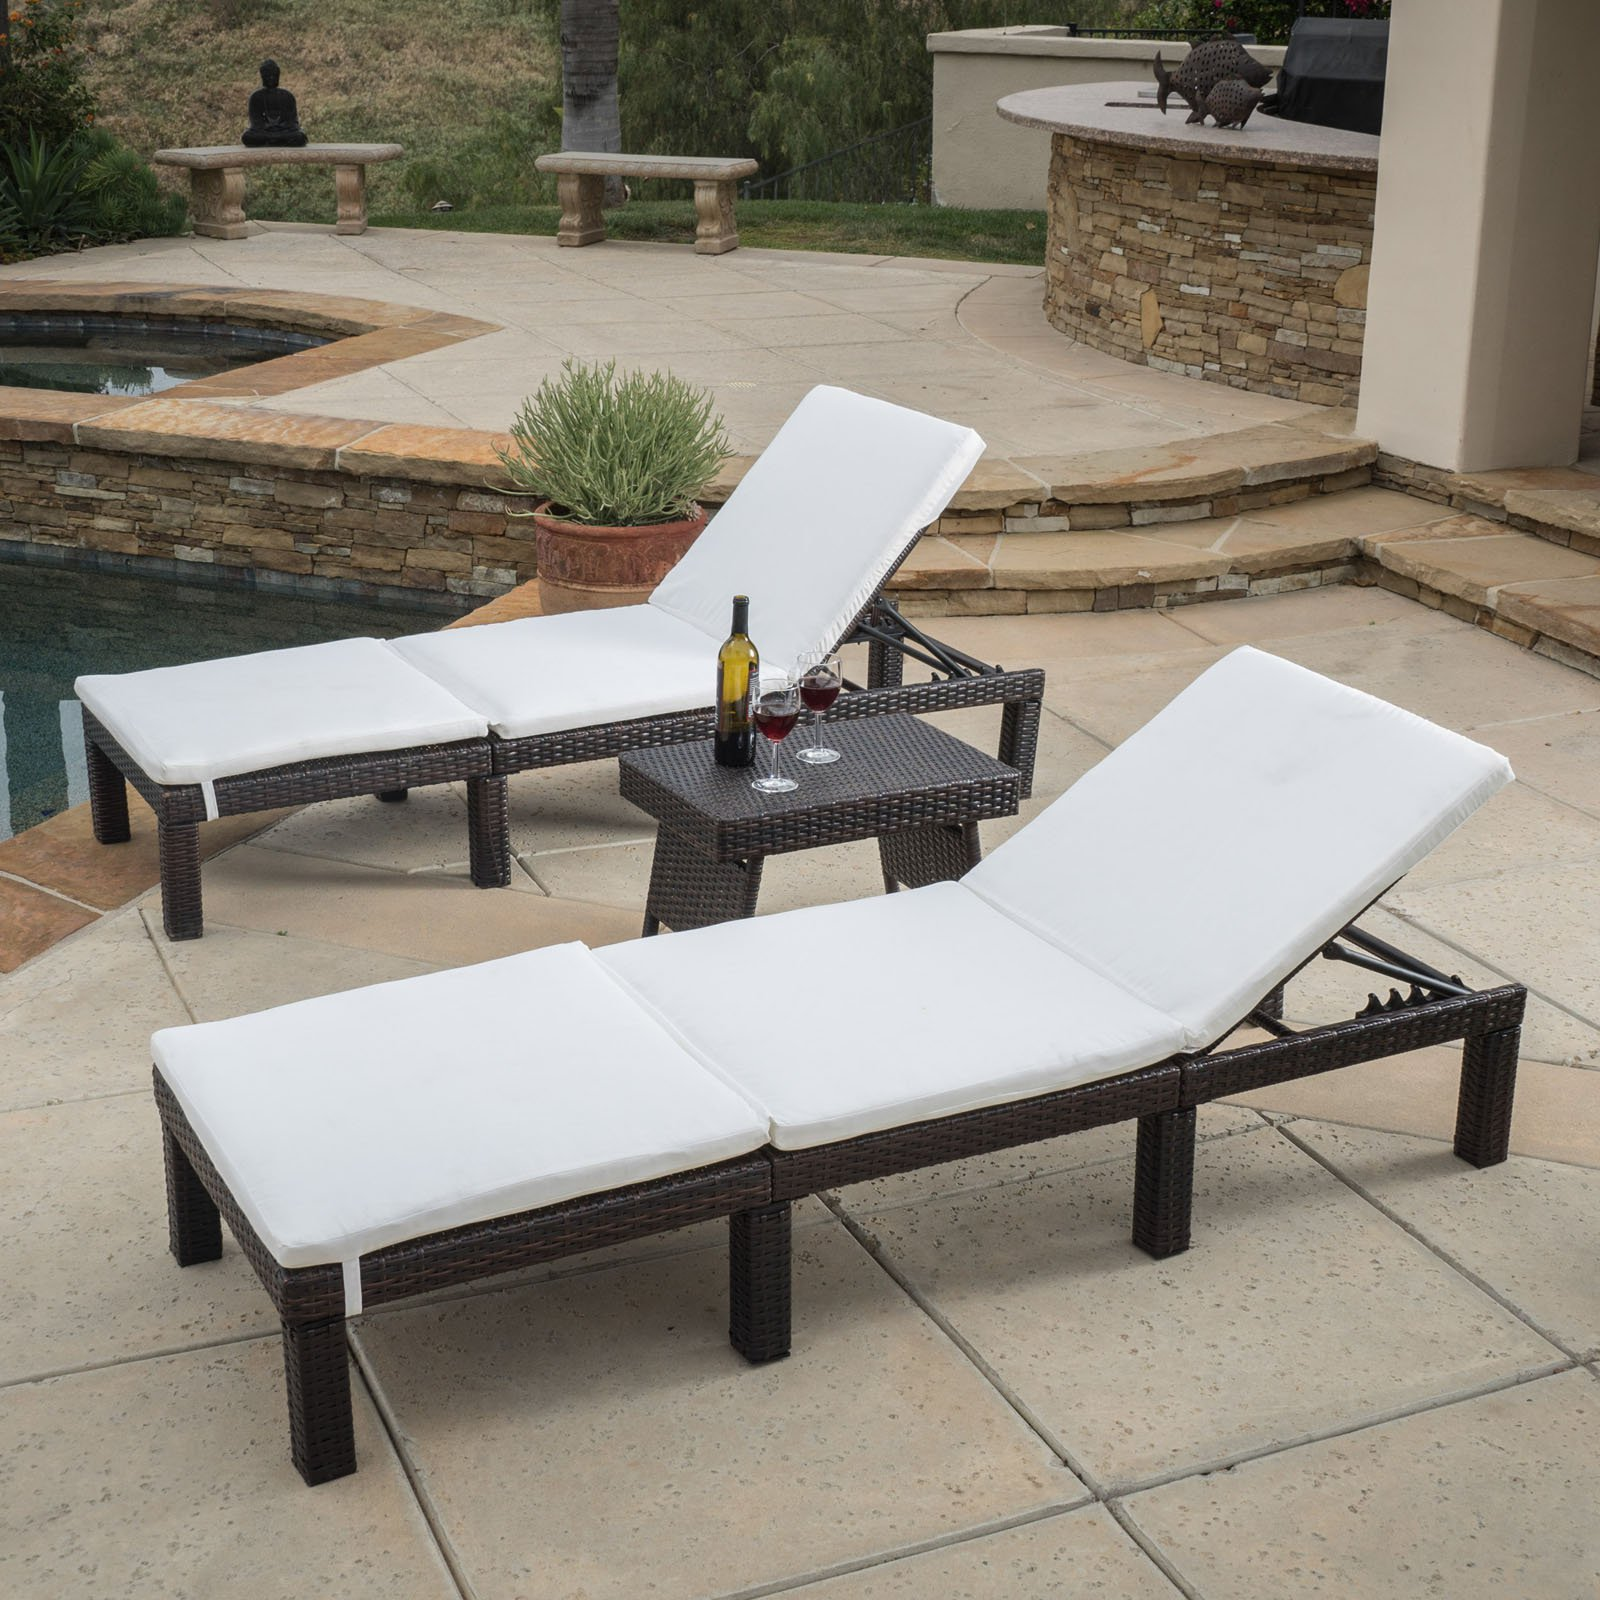 Best Selling Home Kensington 2 Piece Chaise Lounge Set by Home Loft Concepts